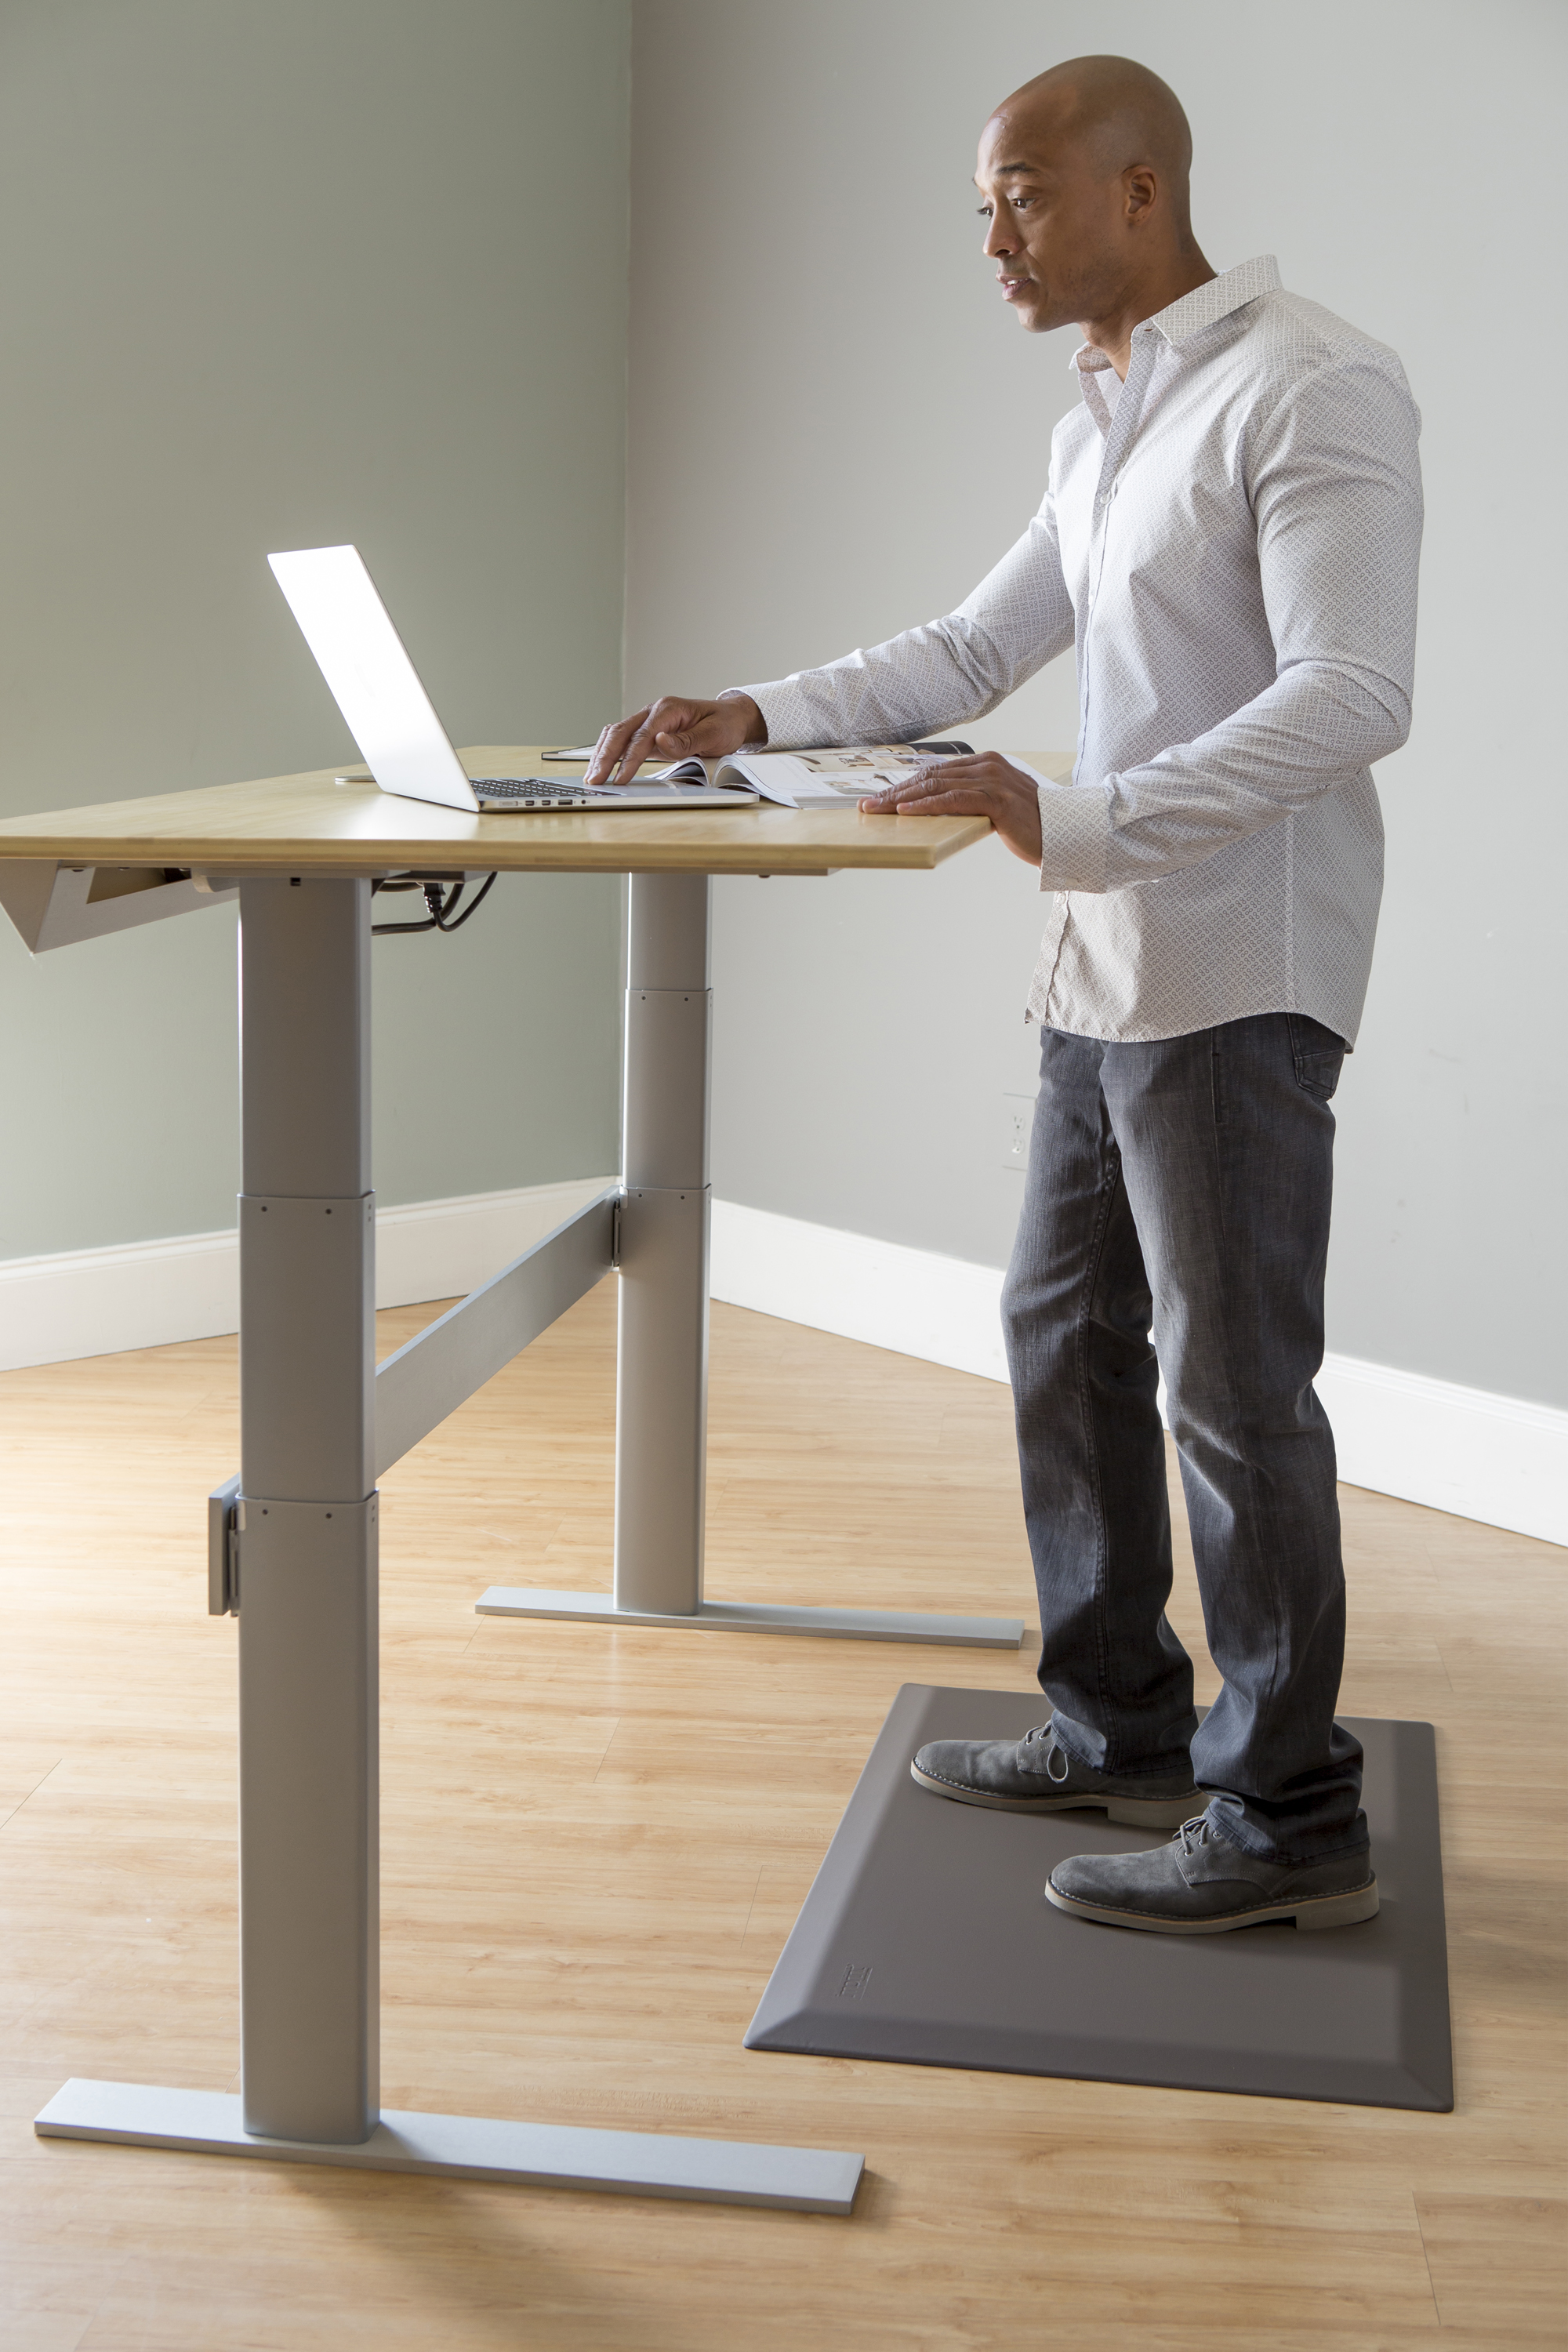 Cumuluspro Anti Fatigue Mat Perfect For Standing Desks